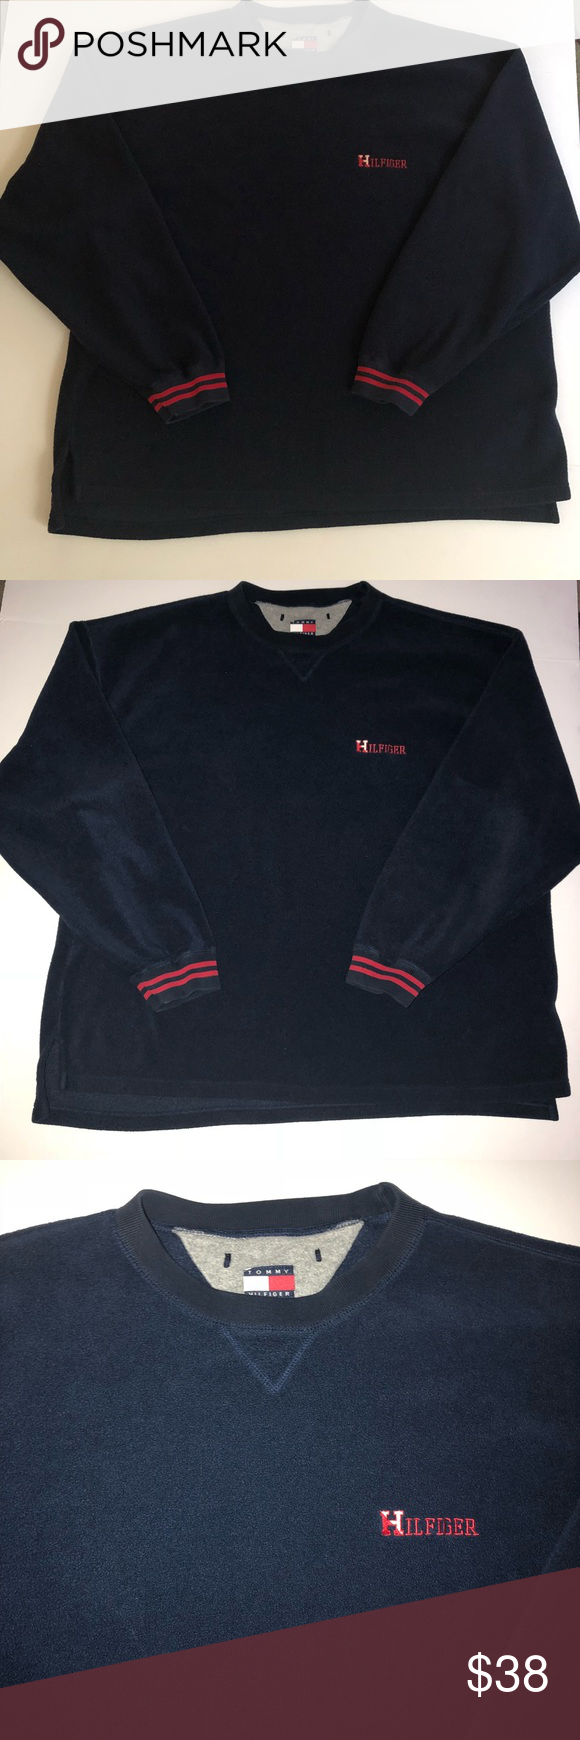 Menus xxl tommy hilfiger fleece sweater blue in great condition size